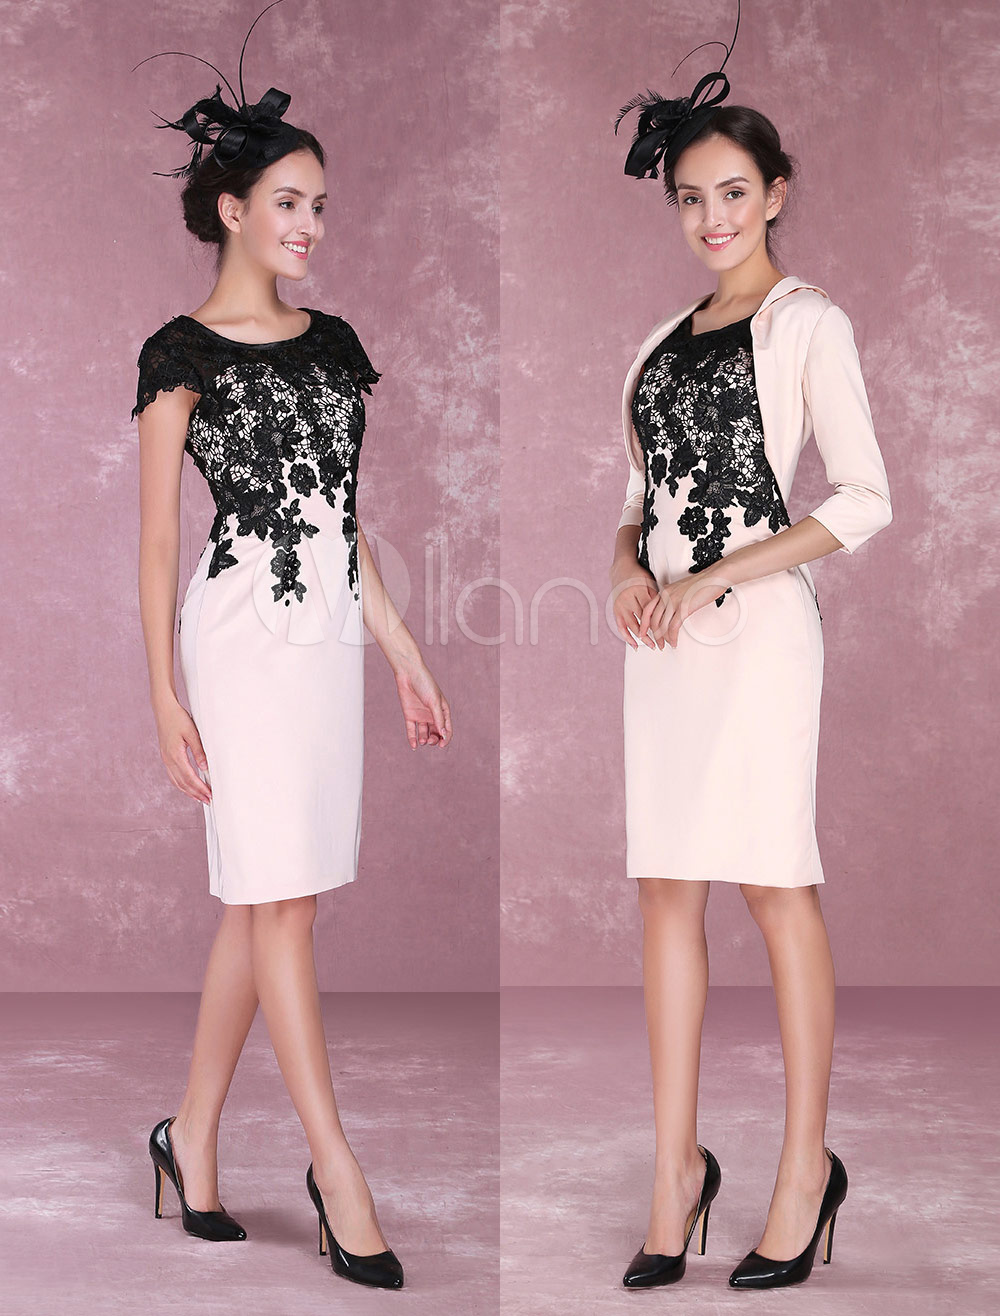 b2beab1eb9c Two Piece Mother Of The Bride Dresses Nude Lace Sheath Cocktail Dress Knee  Length Wedding Guest Dresses With Jacket - Milanoo.com